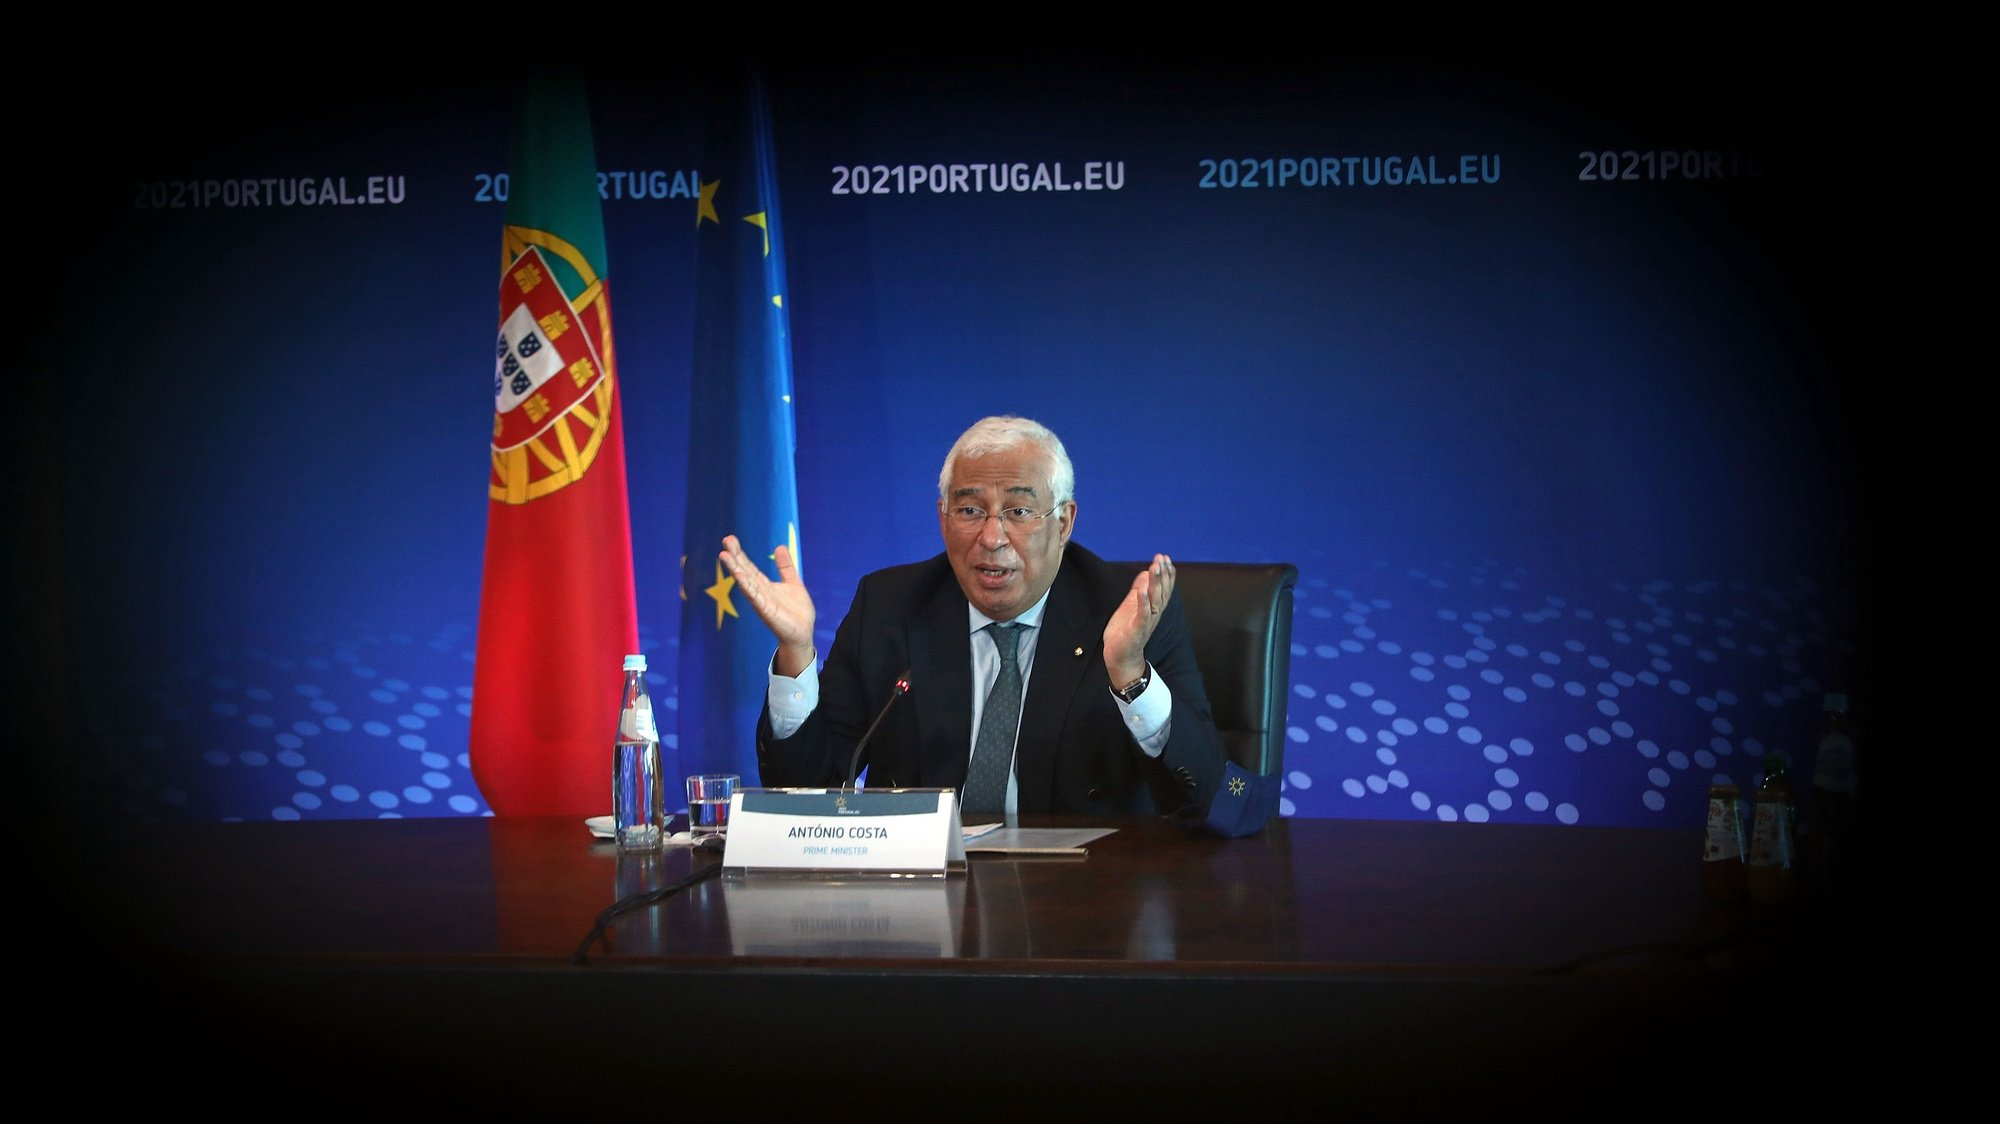 Portuguese Prime Minister António Costa during a virtual visit of journalists included in the official program of the Portuguese Presidency of the Council of the European Union in Lisbon, Portugal, 07 January 2021. During the first half of this year, Portugal will have its fourth presidency after 1992, 2000 and 2007. ANTÓNIO PEDRO SANTOS/LUSA